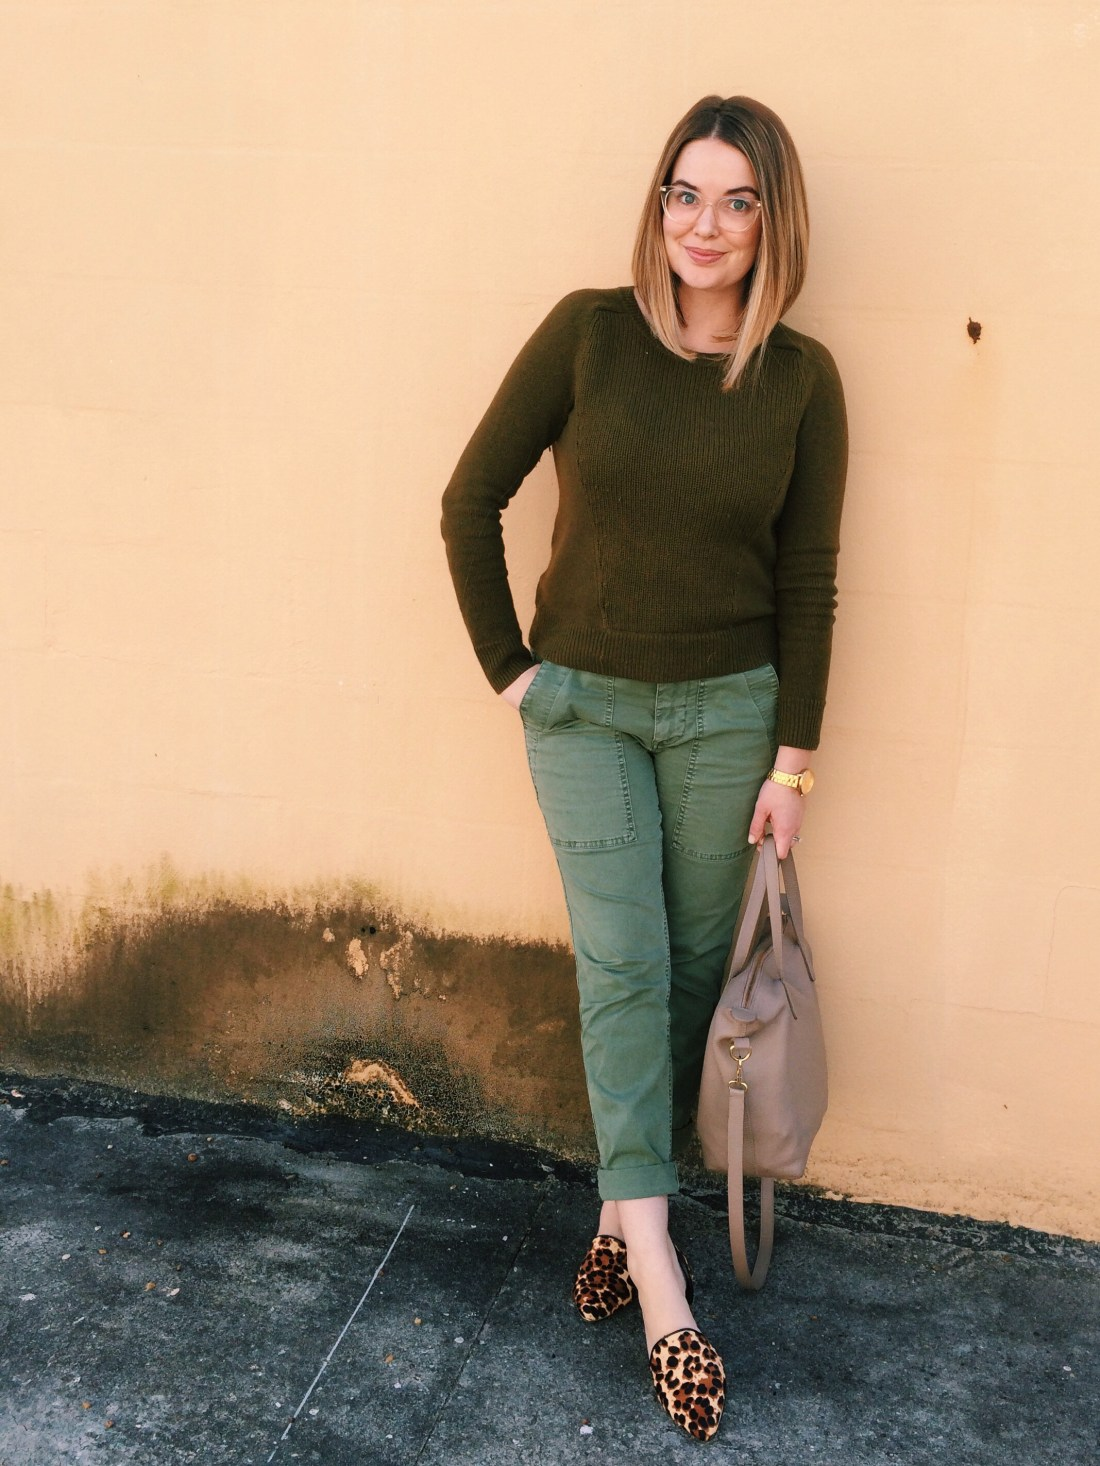 Casual Outfit Ideas: Slim fit cargo chinos with sweater and leopard calf hair flats.